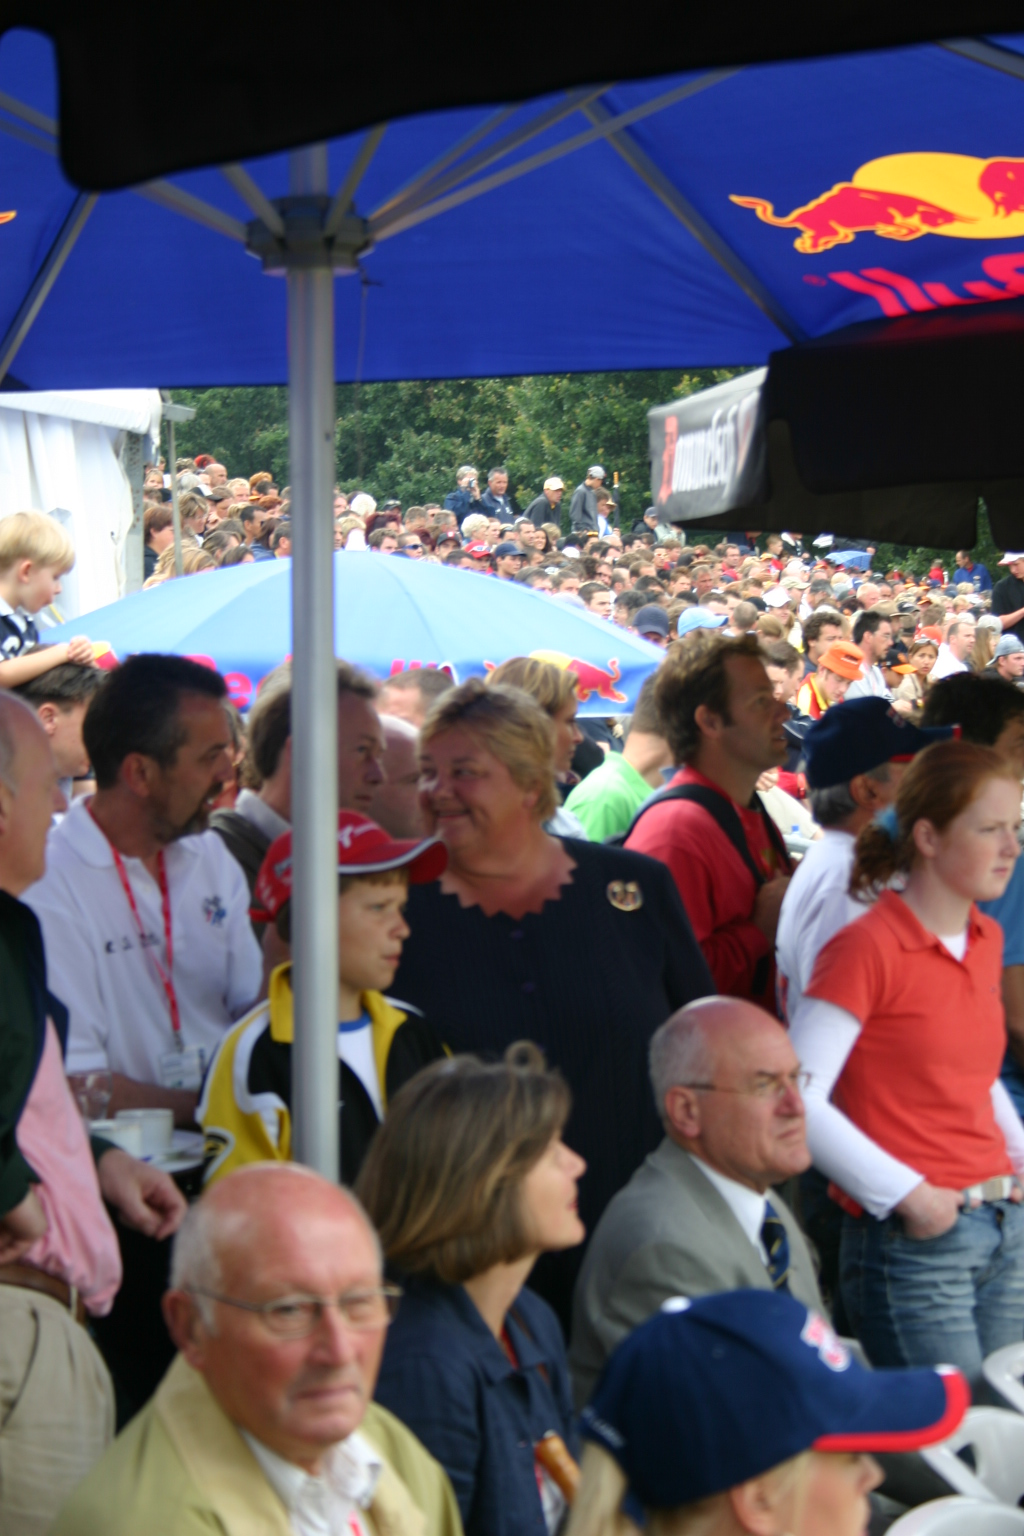 Mrs. ERica Terpstra, Chairman of the Dutch Olympic Committee, in the middle of the crowd